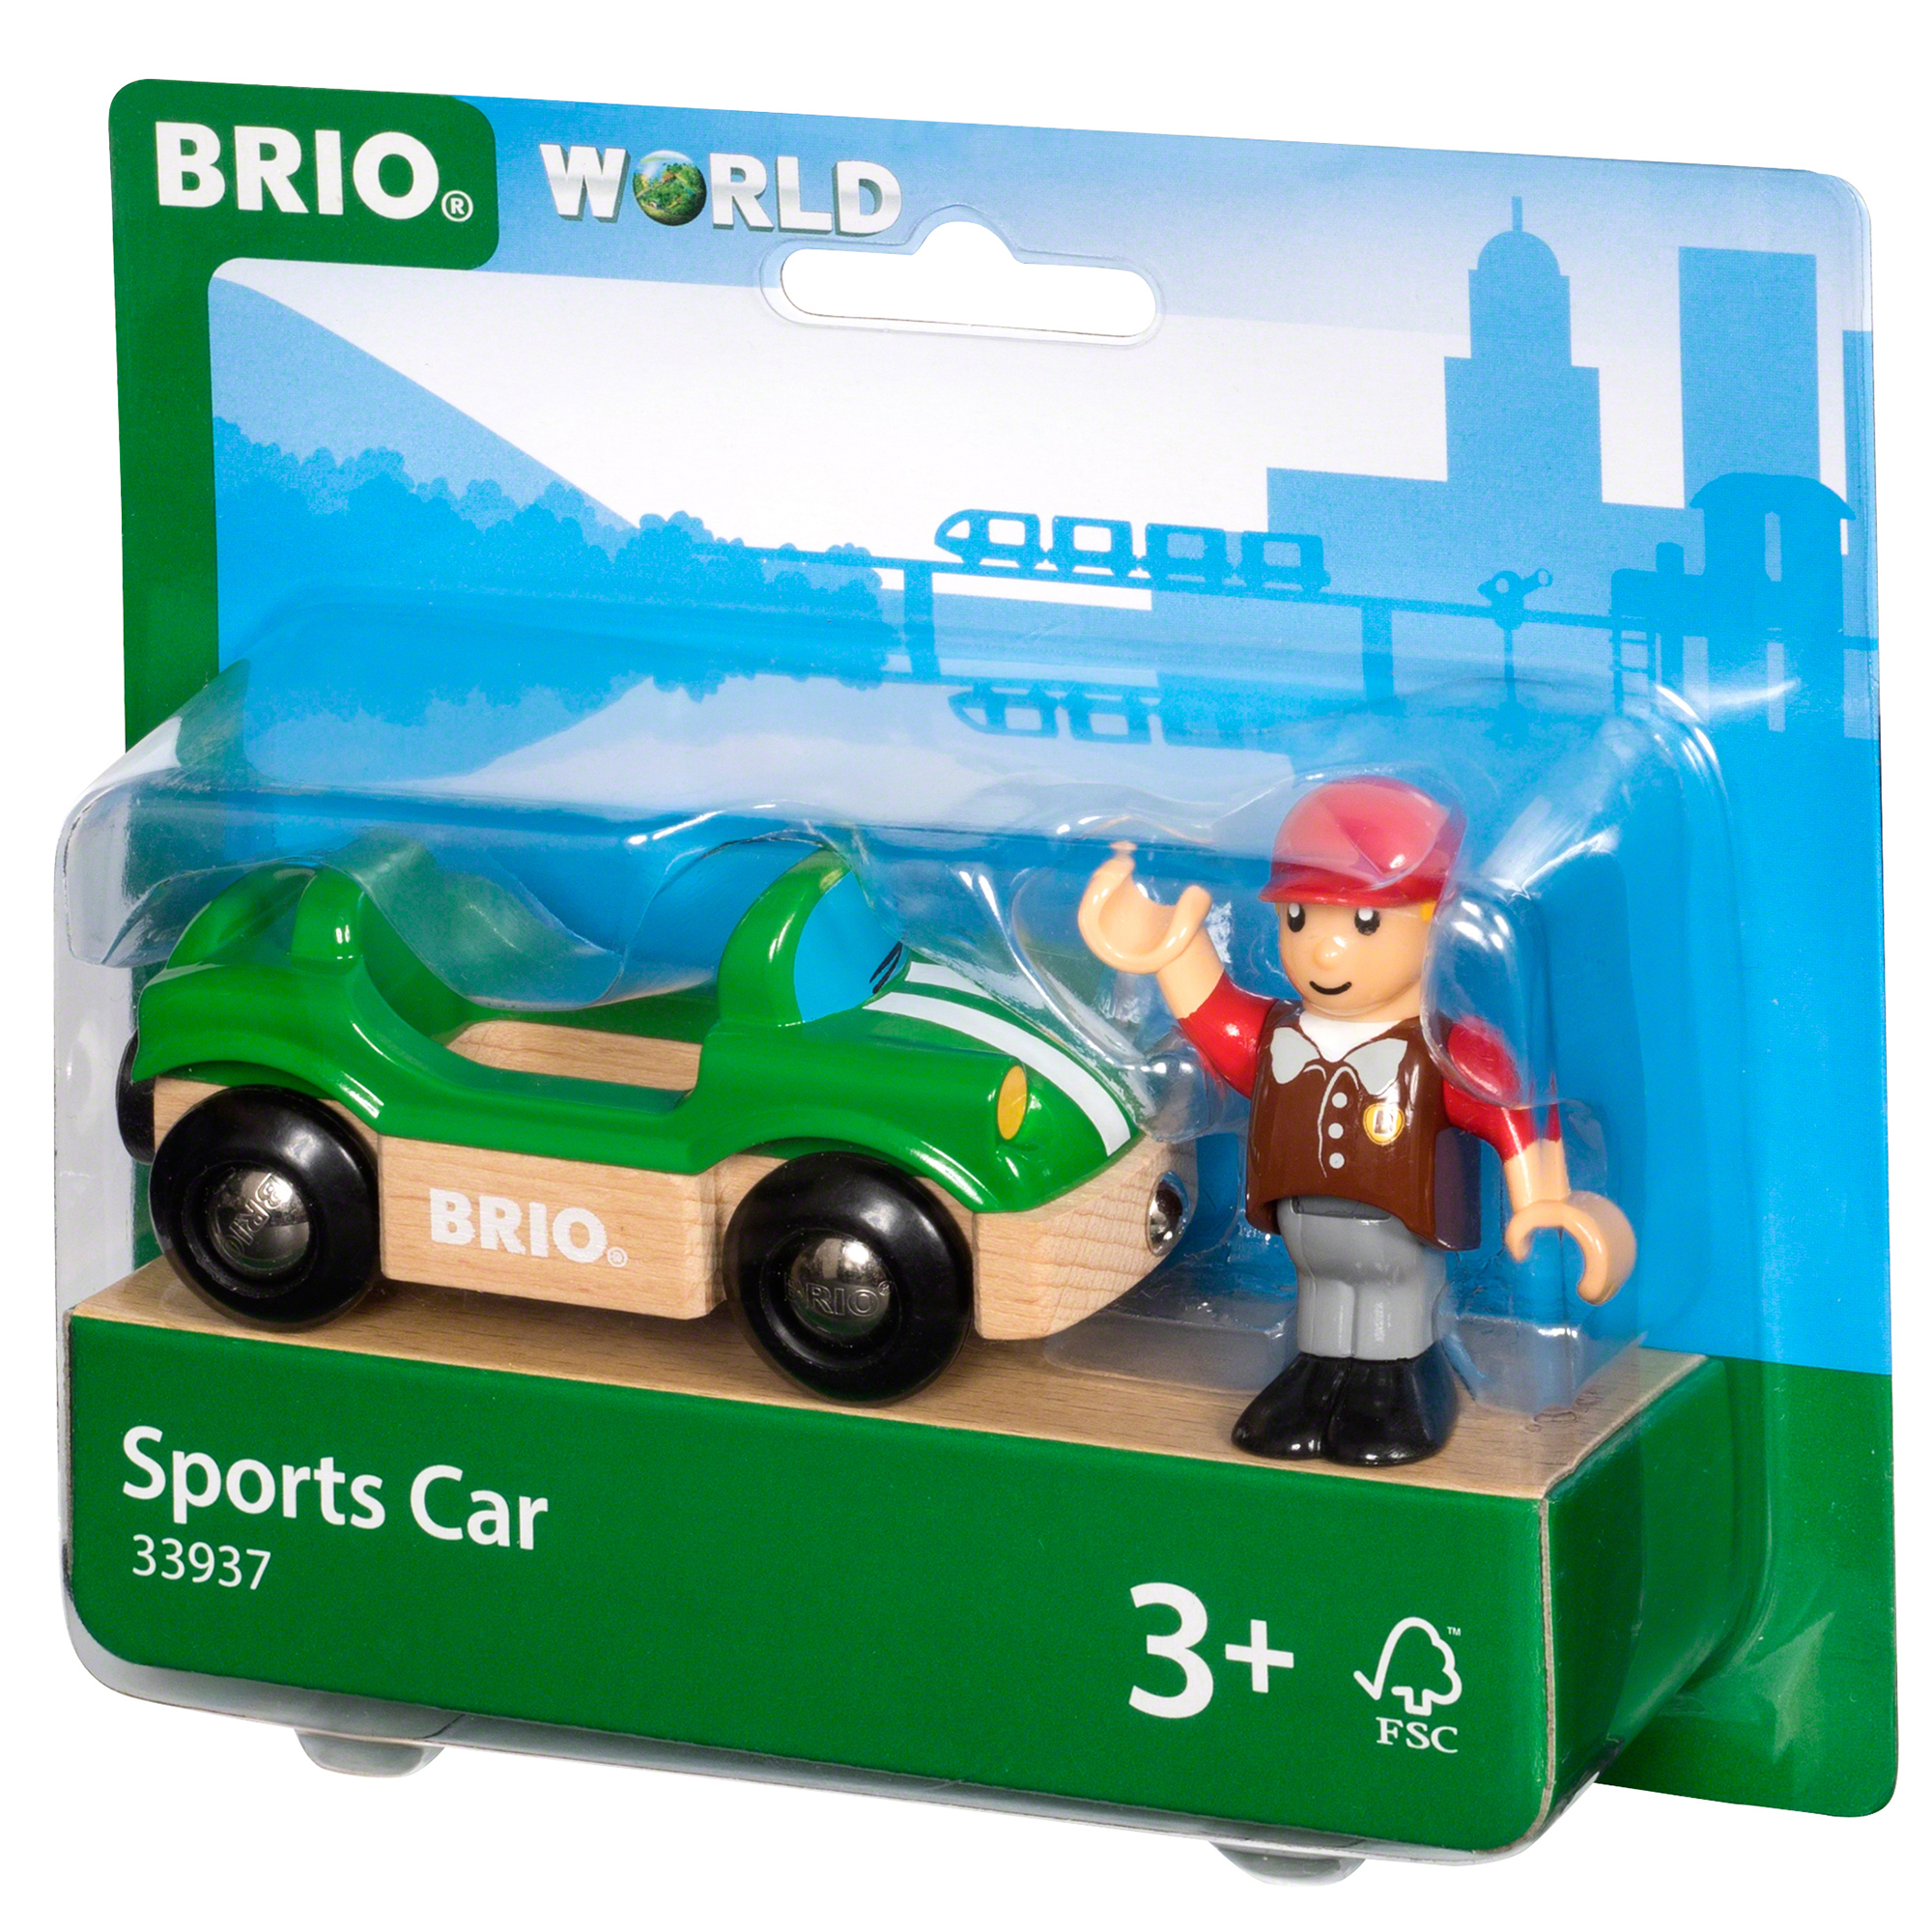 BRIO World Sports Car